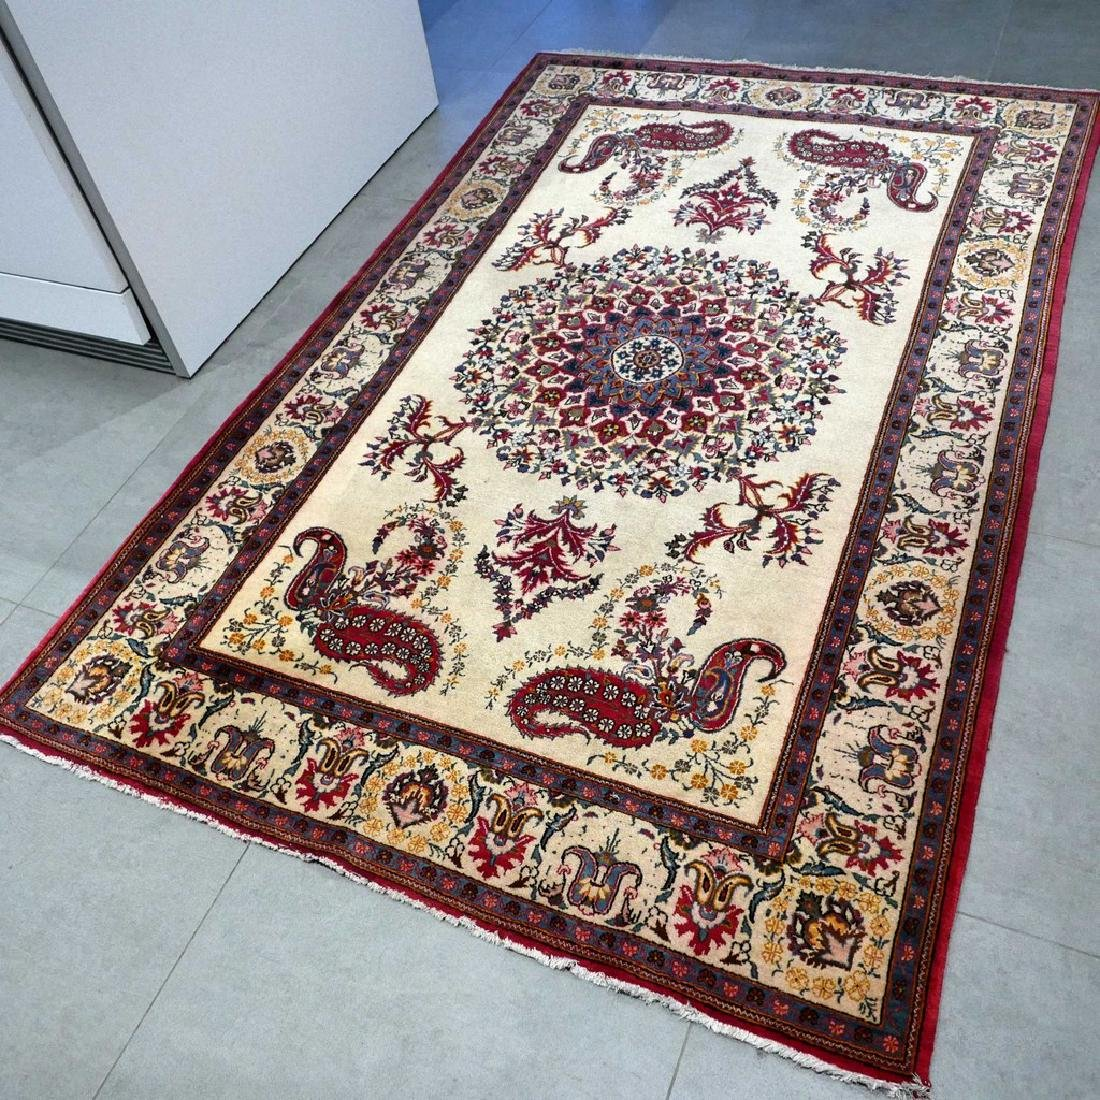 Keshan With Special Design Rug 7x4.4 - 8